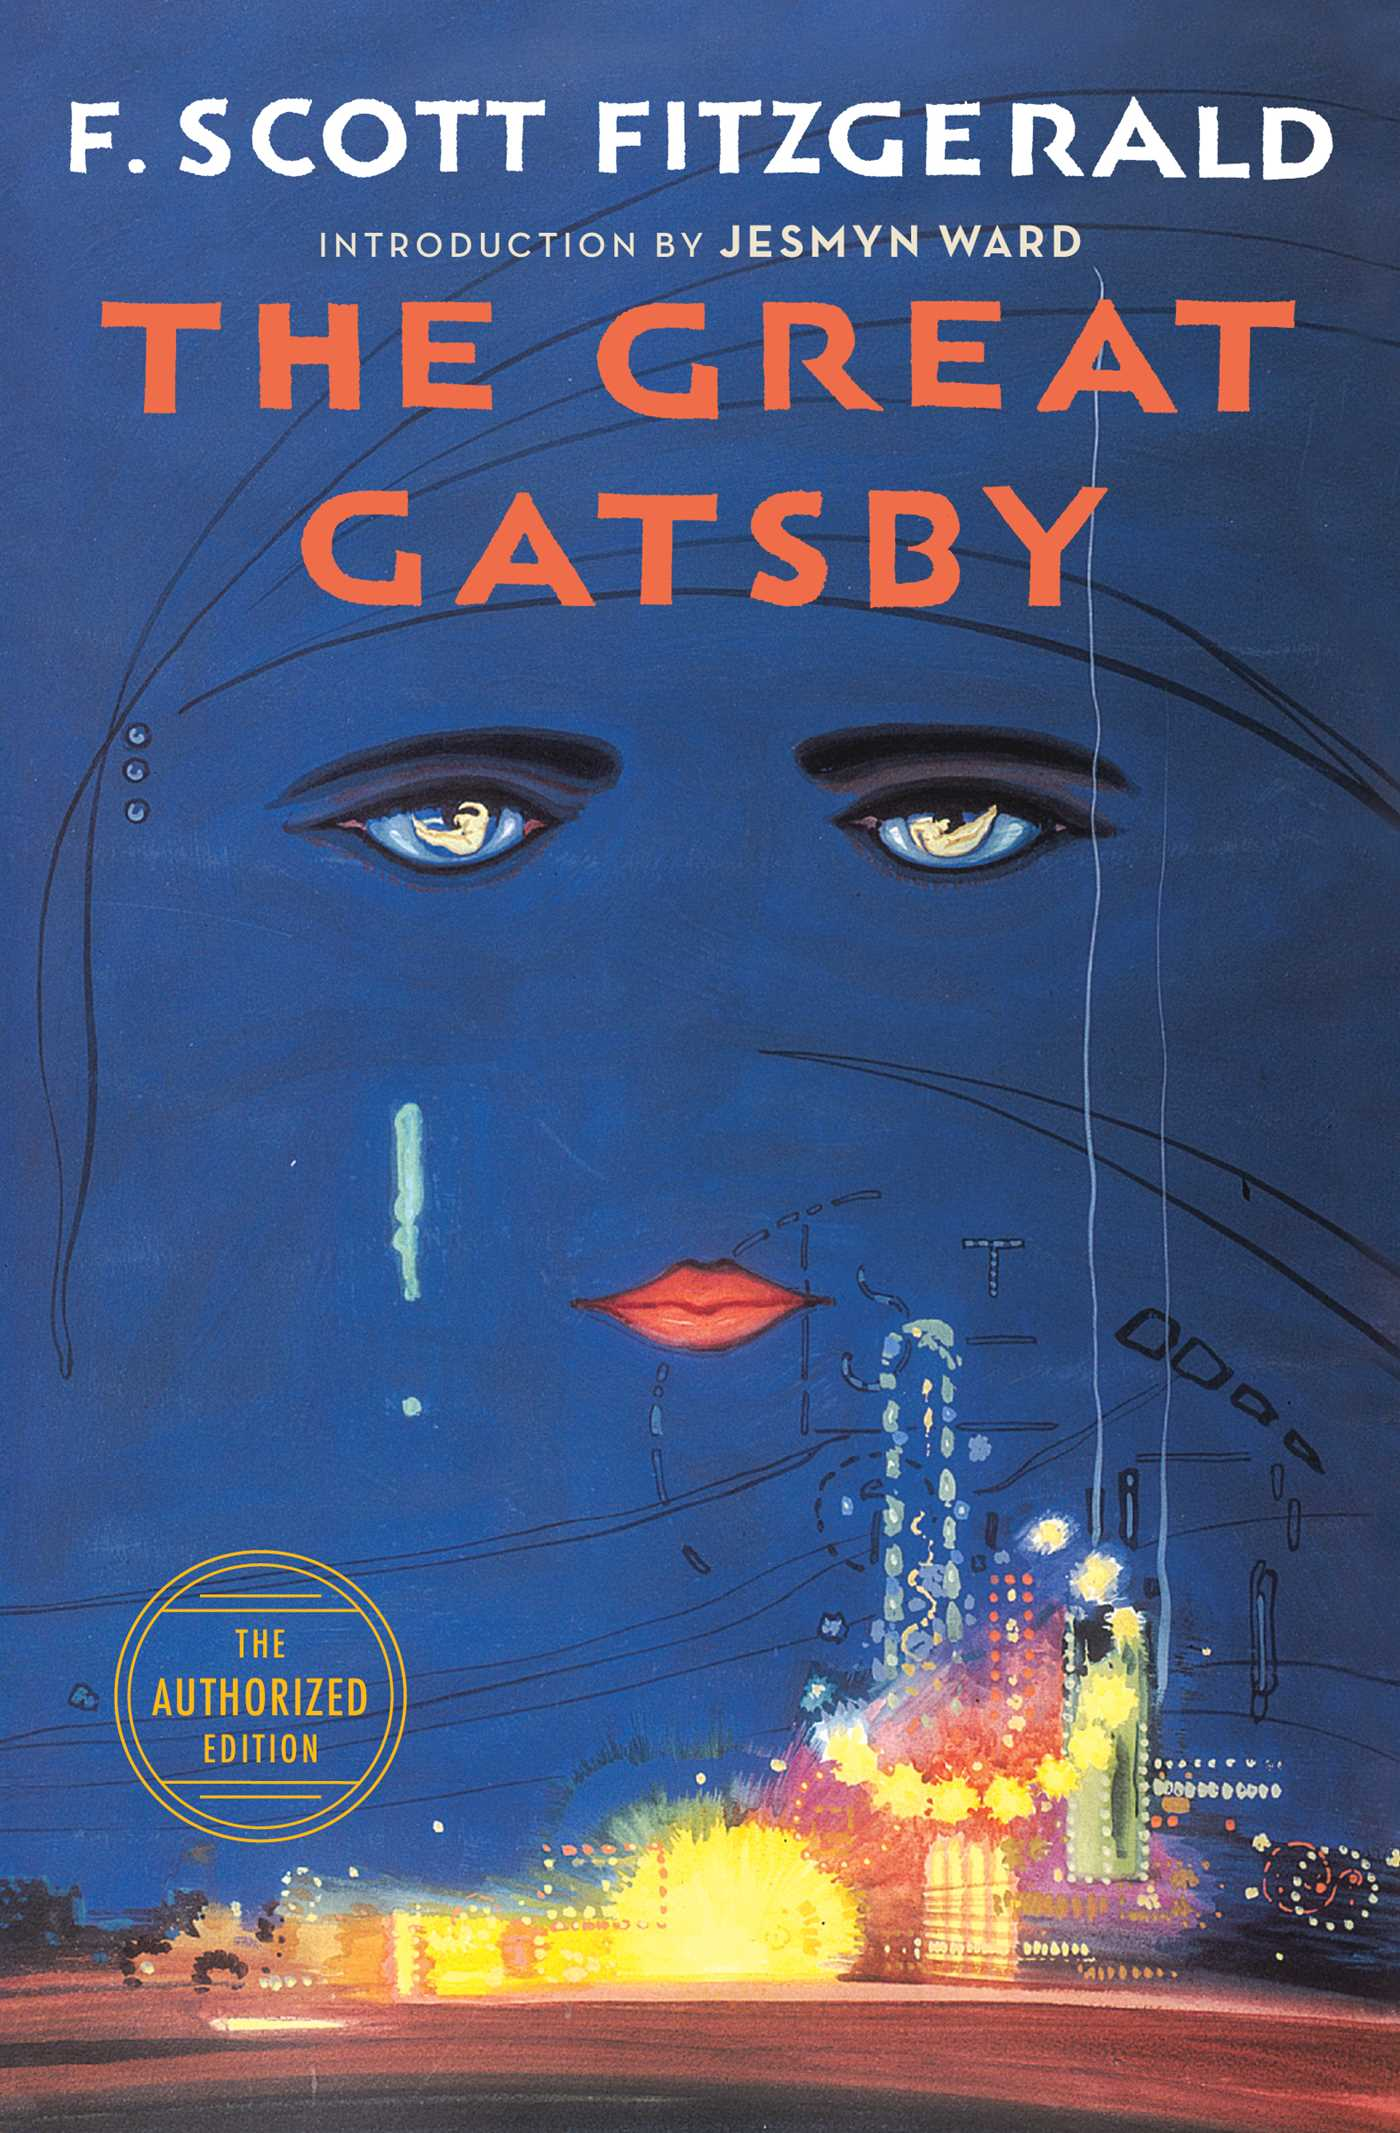 The great gatsby 9780743273565 hr